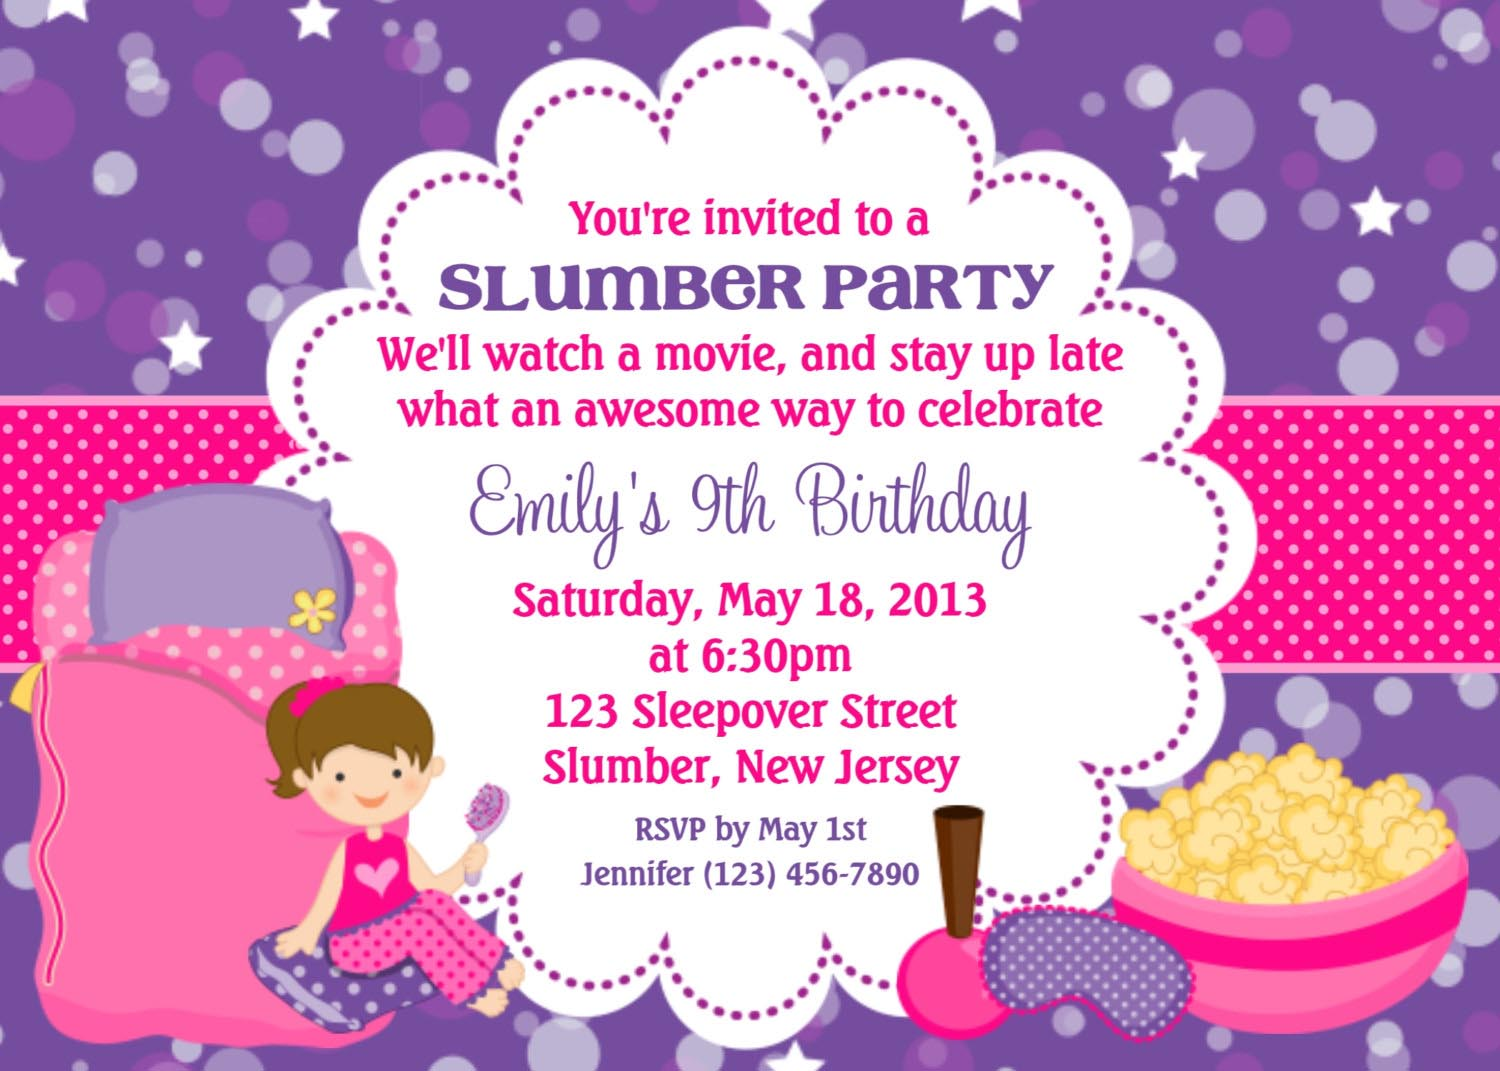 Pajama Party Invitations Free Printable creative business cards